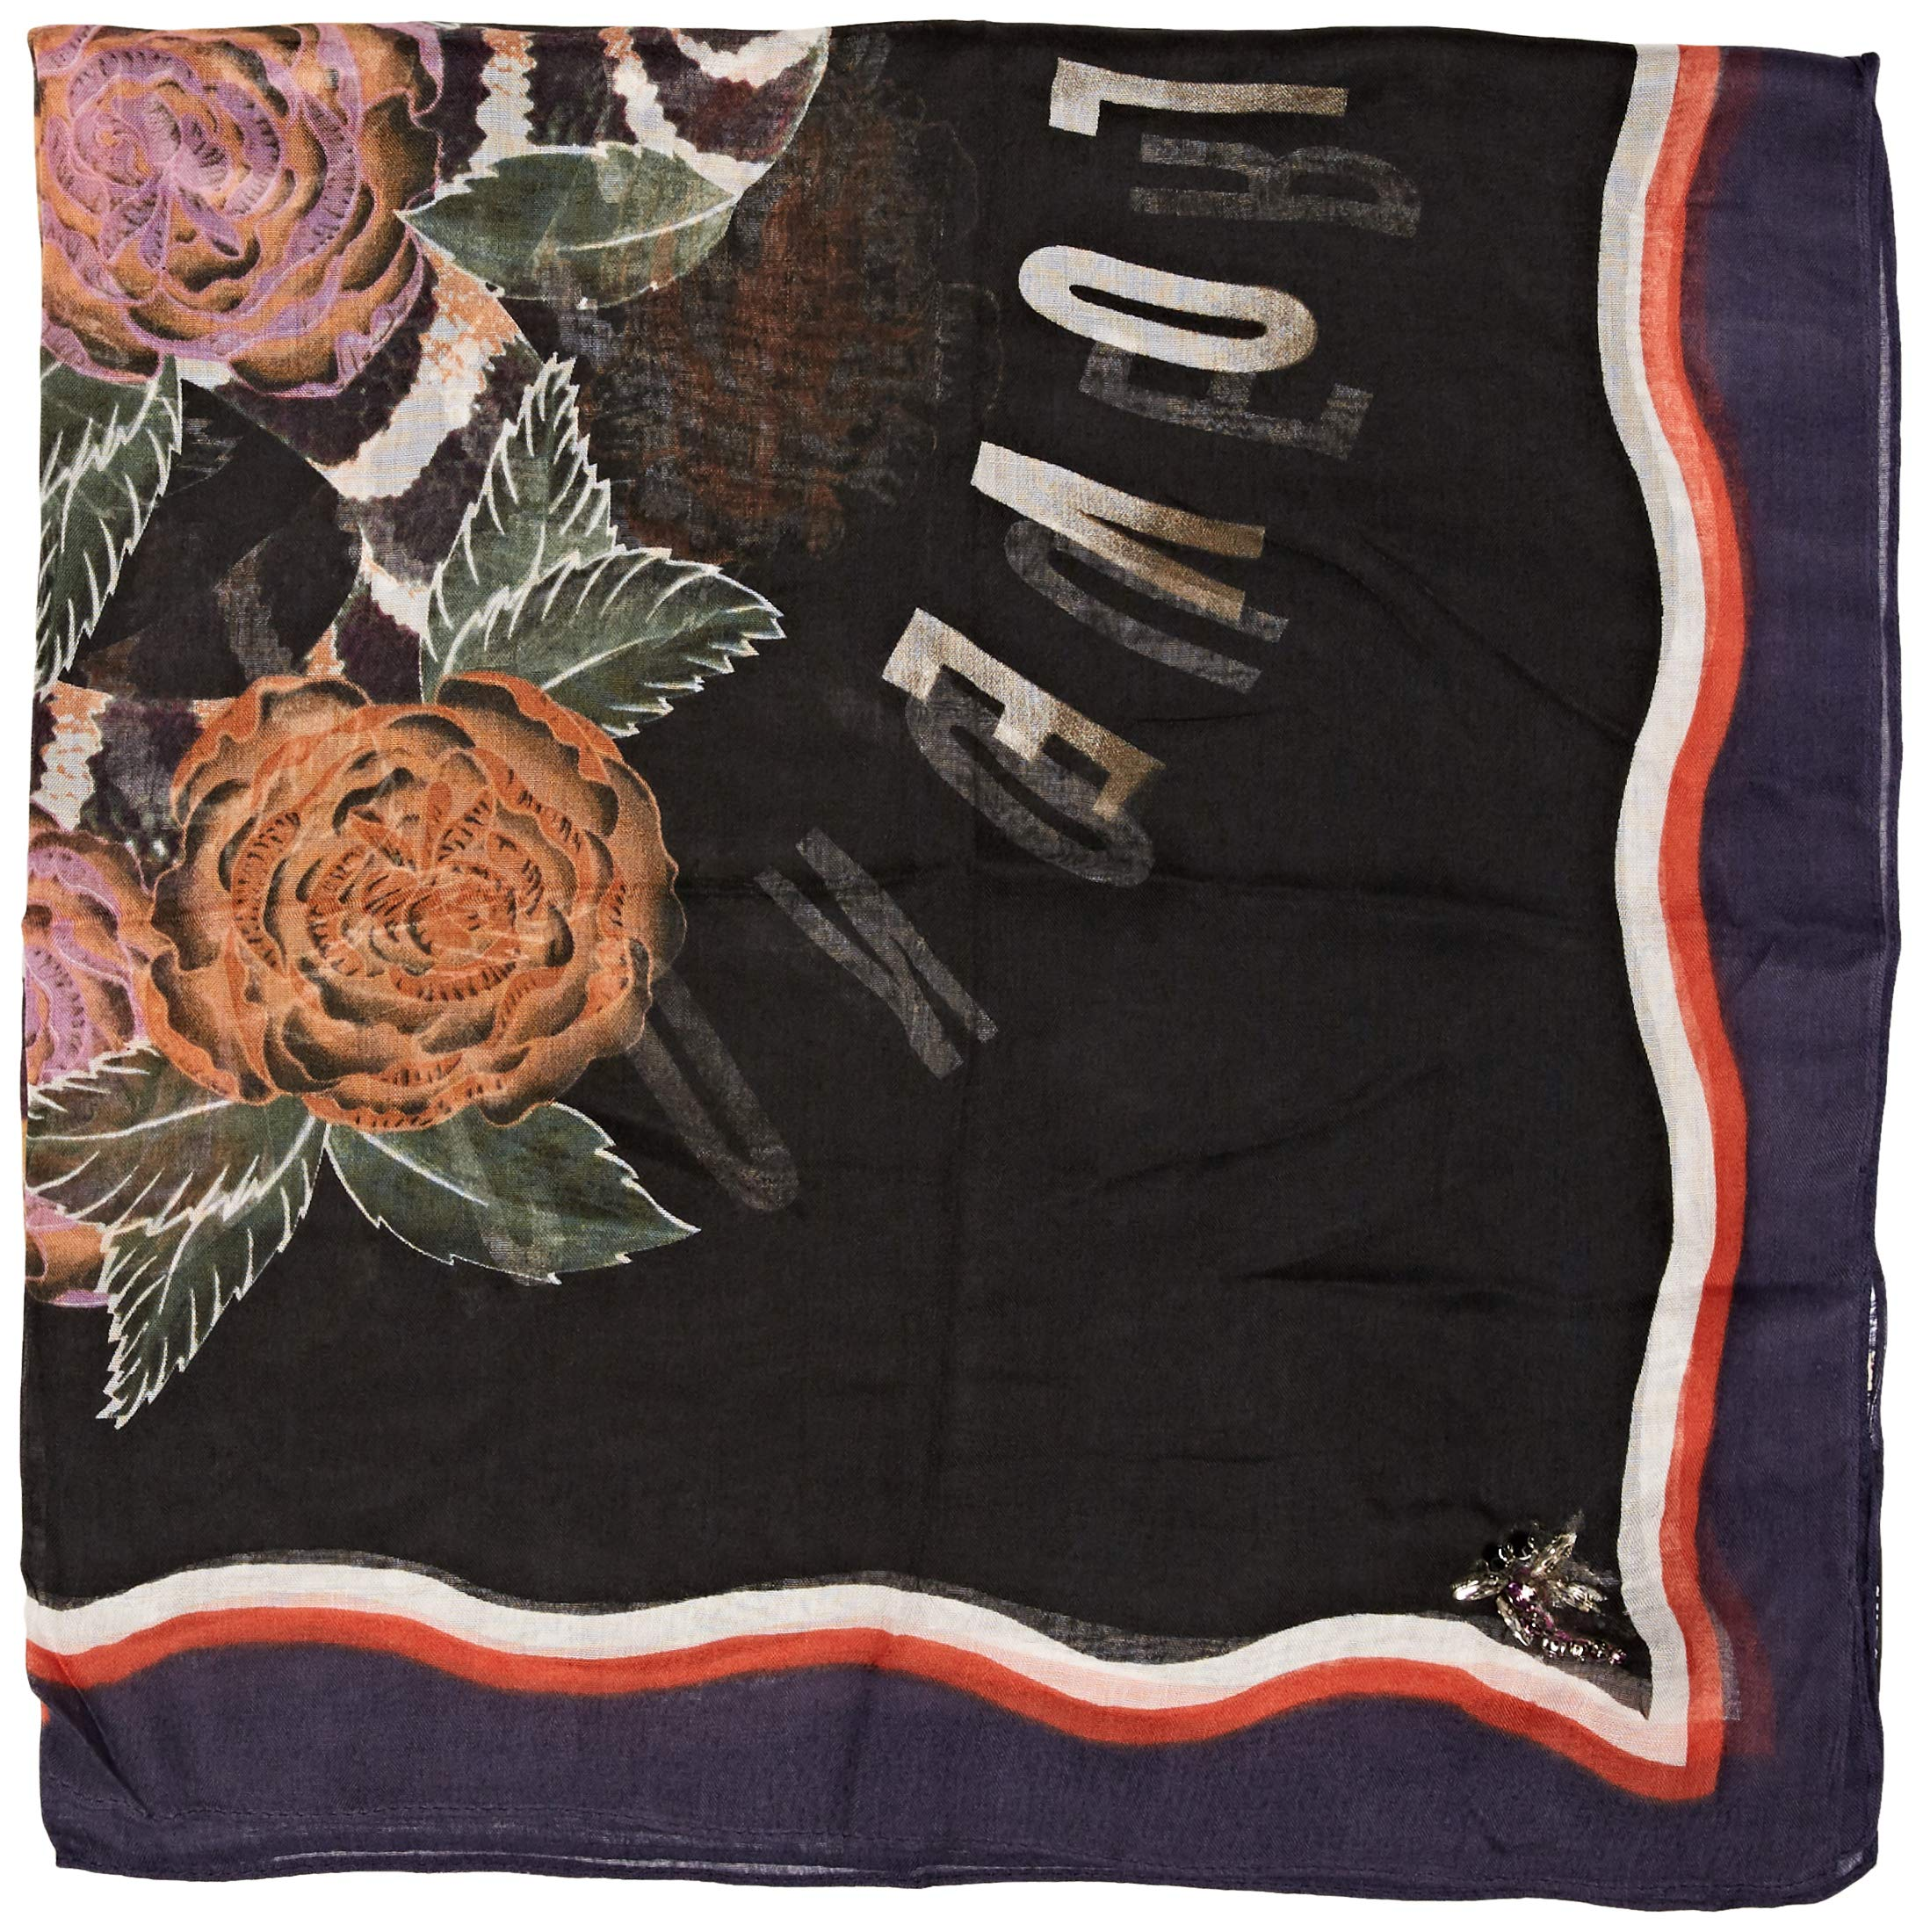 Guess Foulard Pañuelo, Multicolor (Flower and Snake Bla F90c), Talla única (Talla del fabricante: ONE) para Mujer